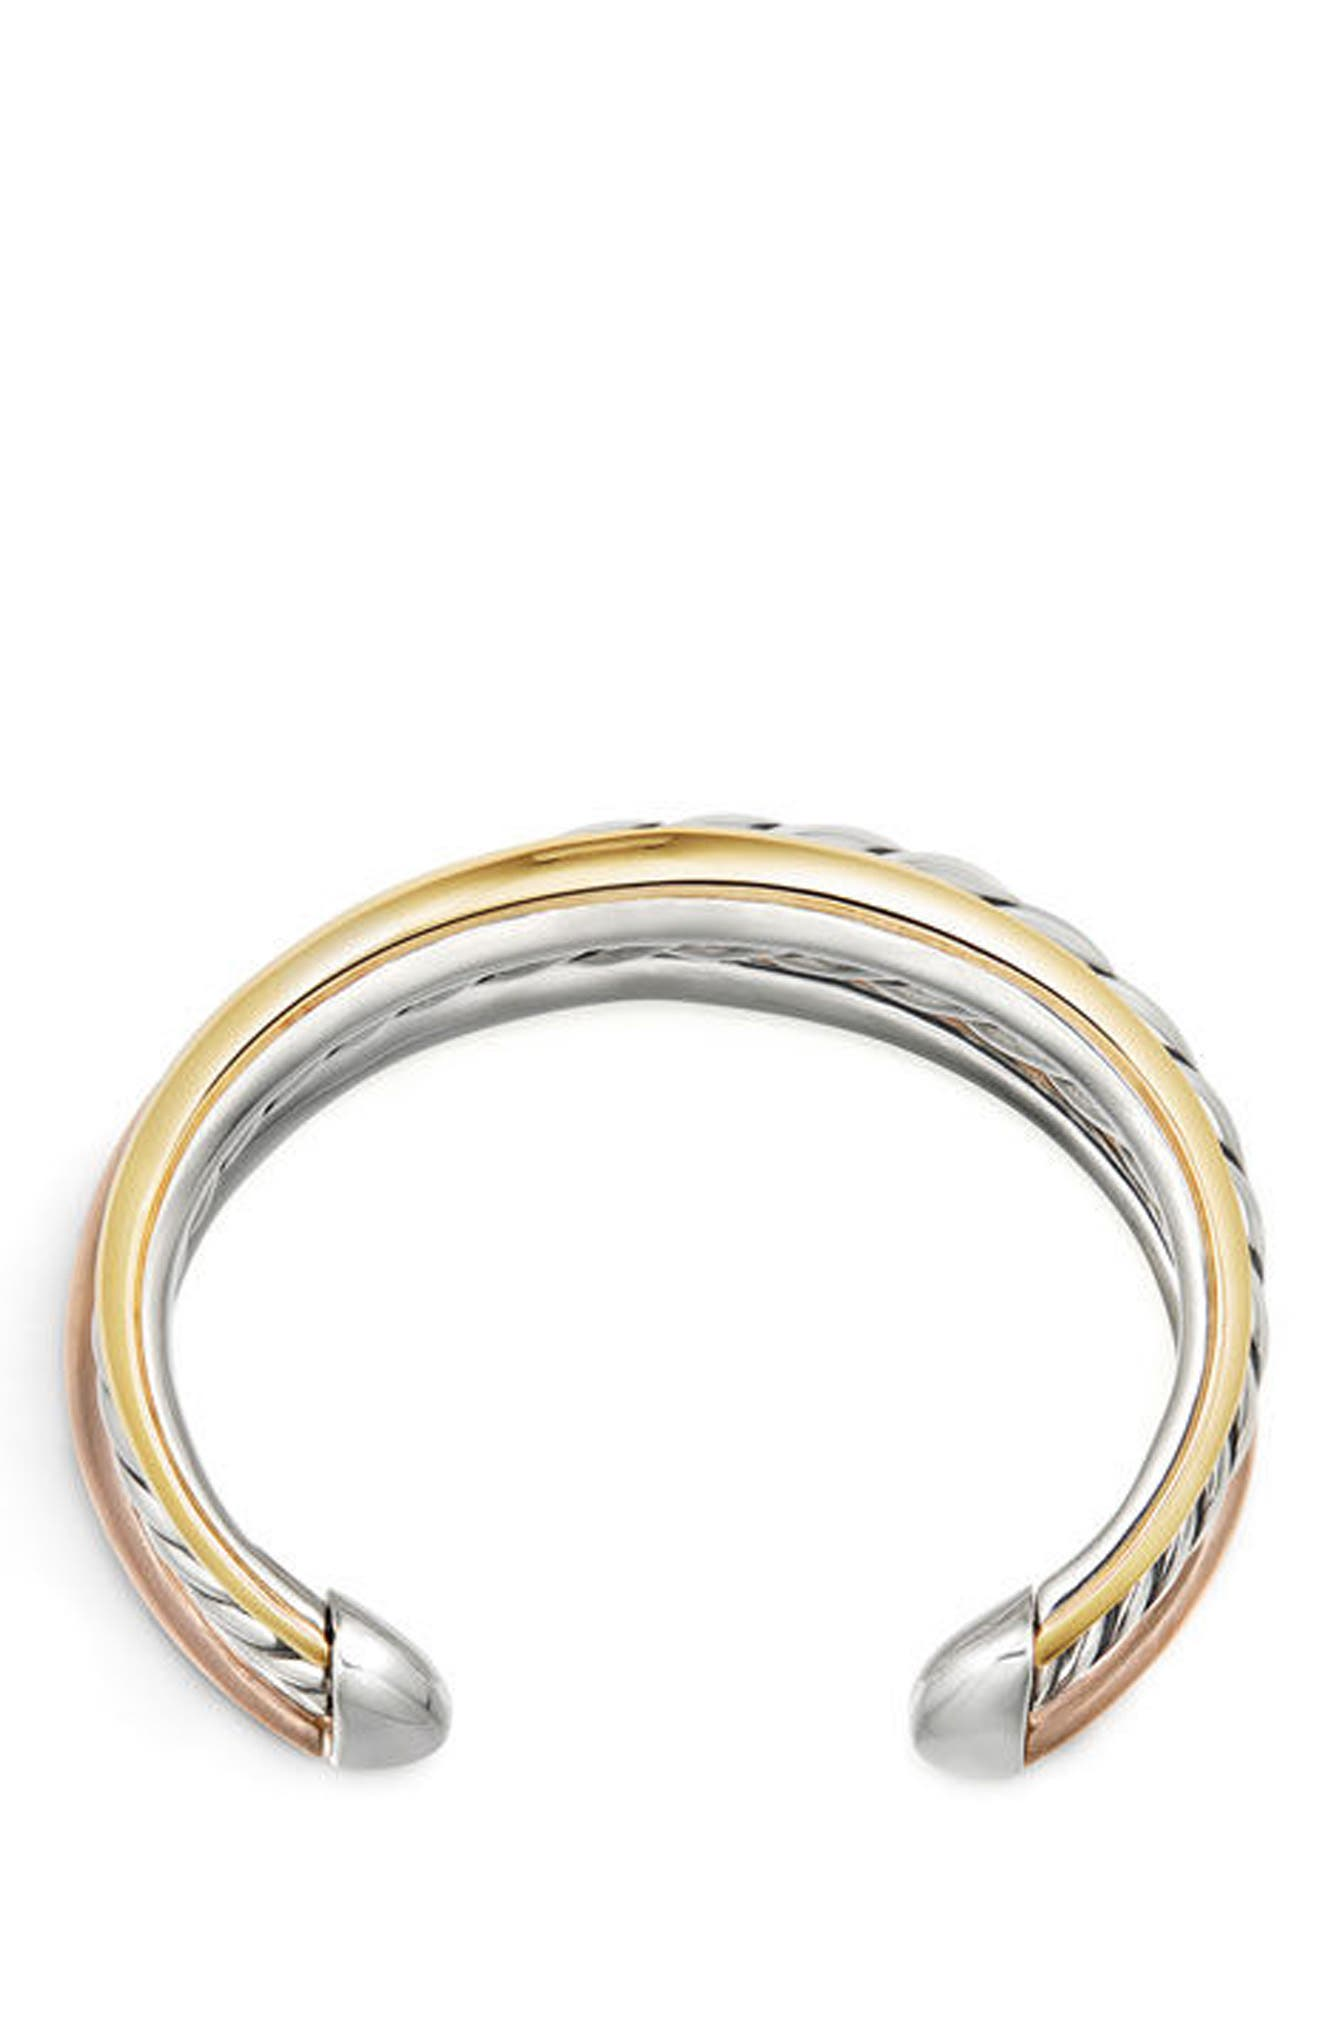 Pure Form Mixed Metal 3-Row Cuff,                             Alternate thumbnail 3, color,                             SILVER